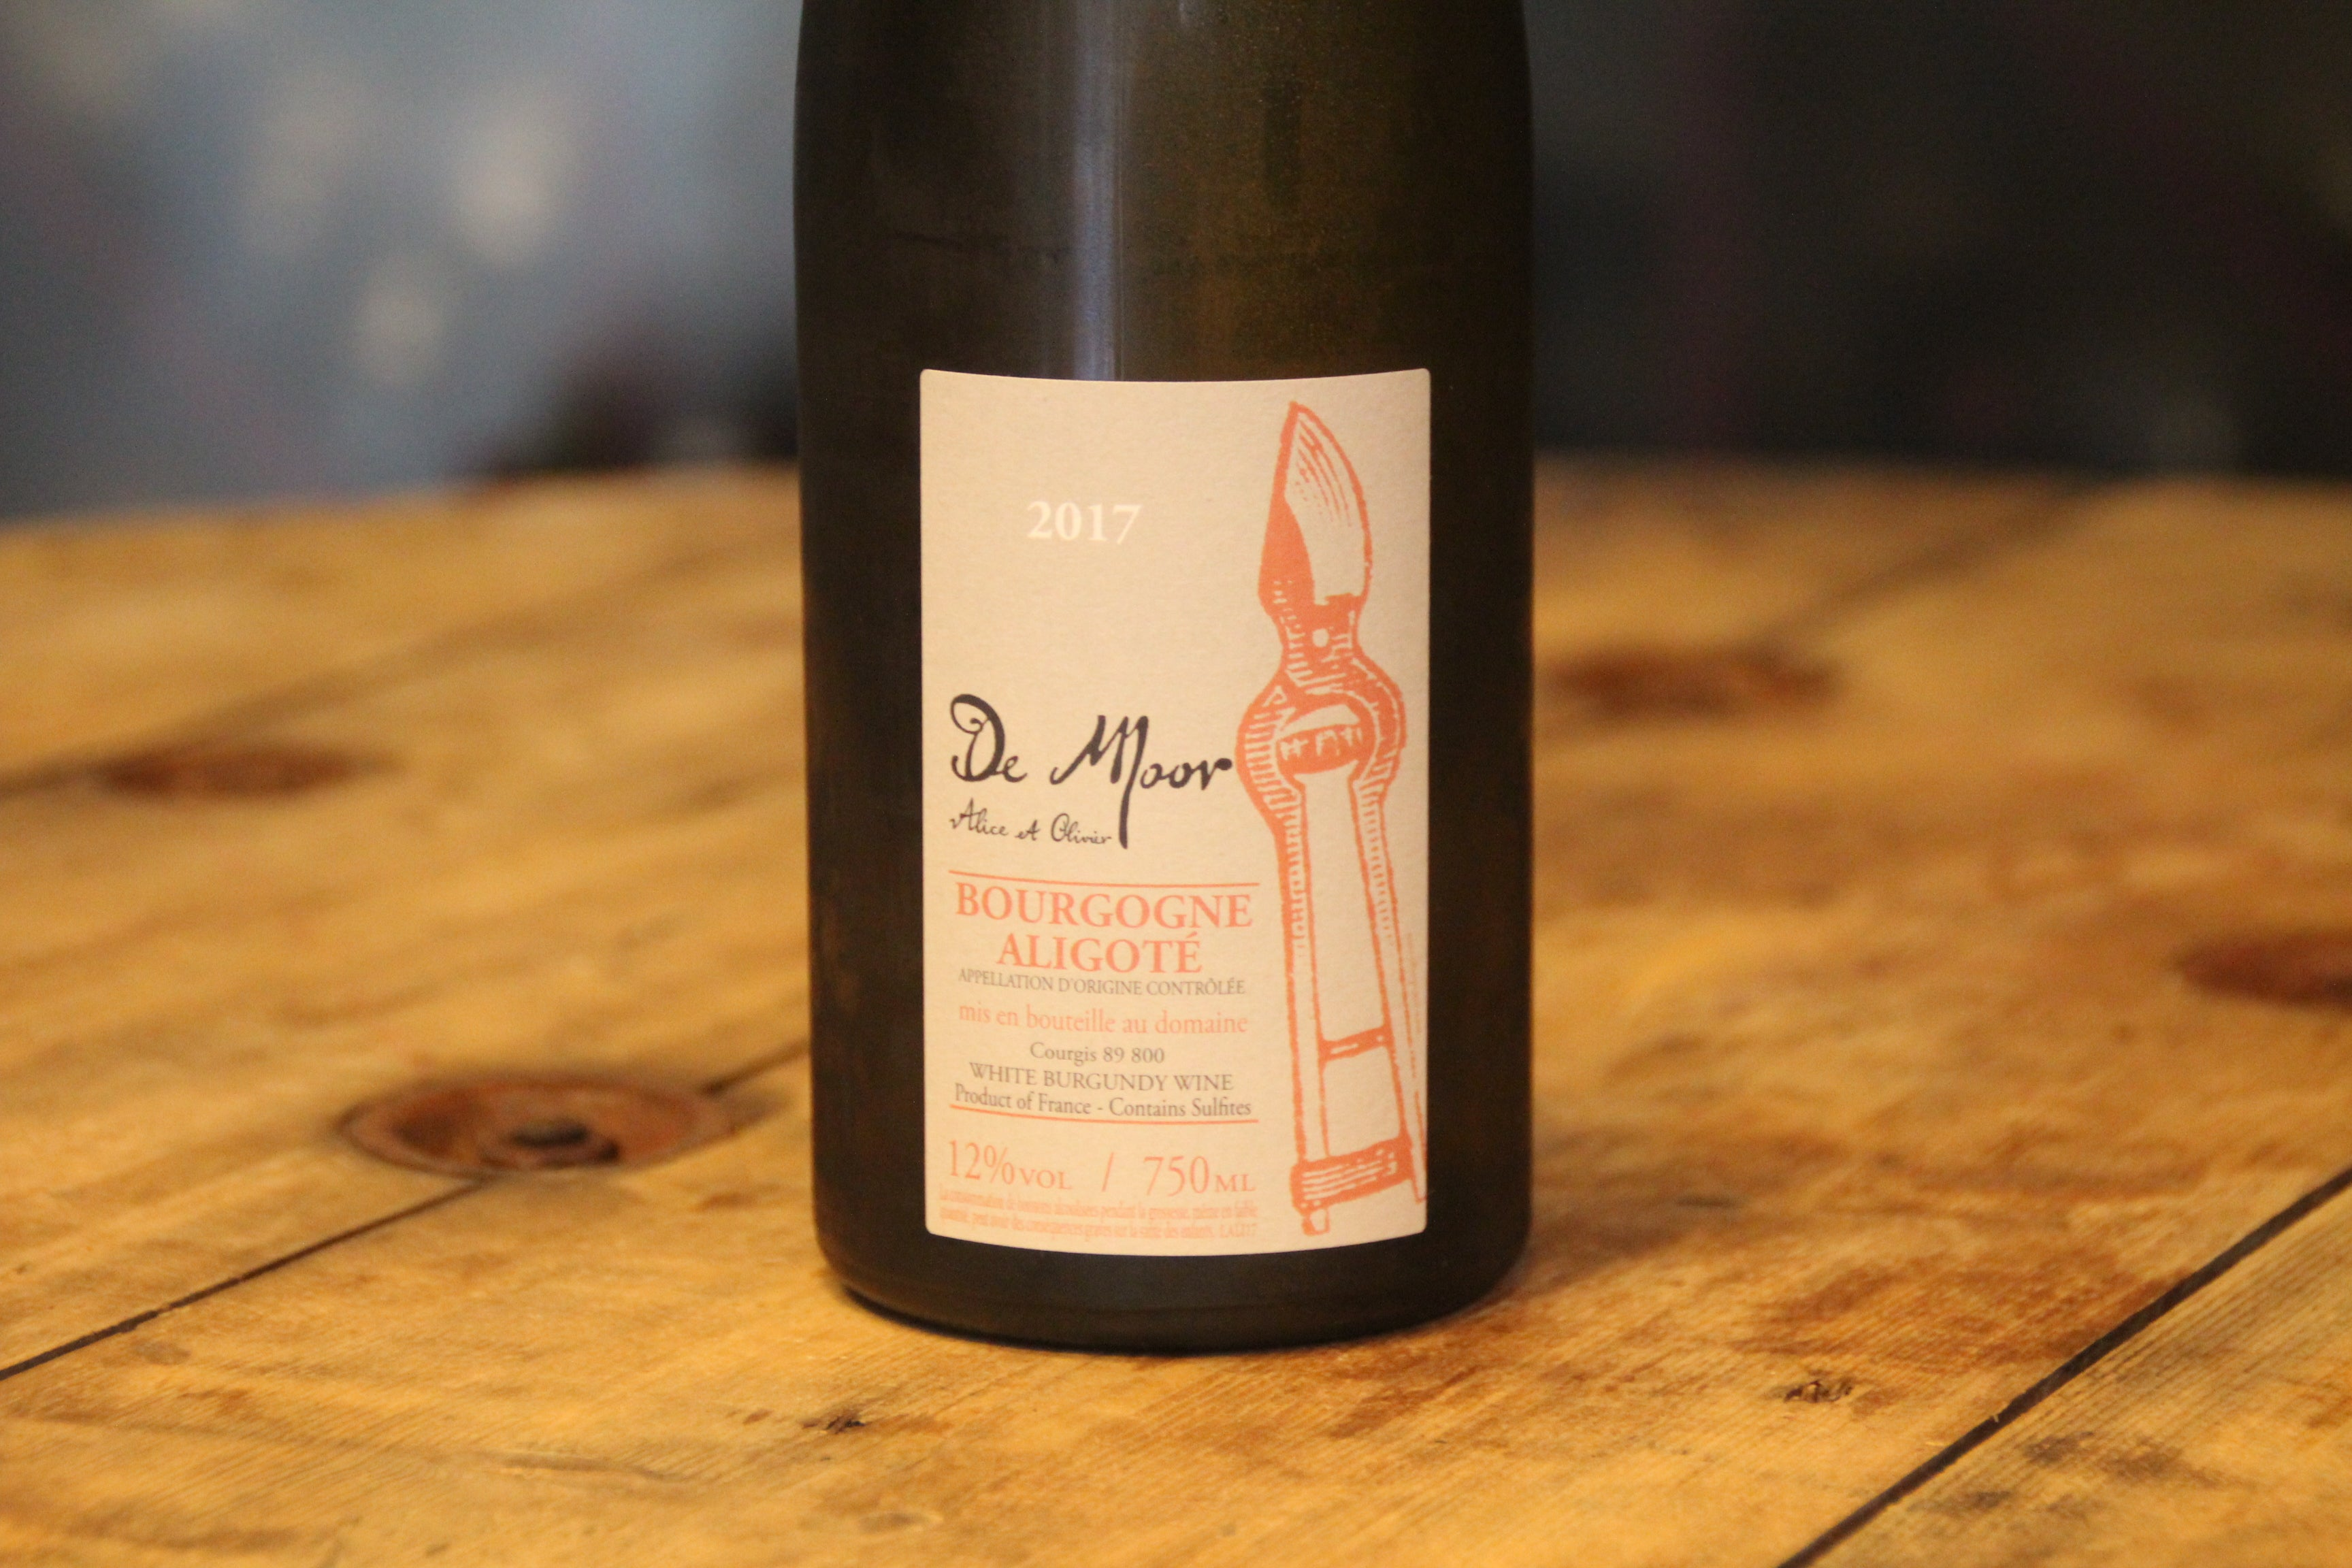 Bourgogne Aligote 2017 - Domaine de Moor - SOLD OUT